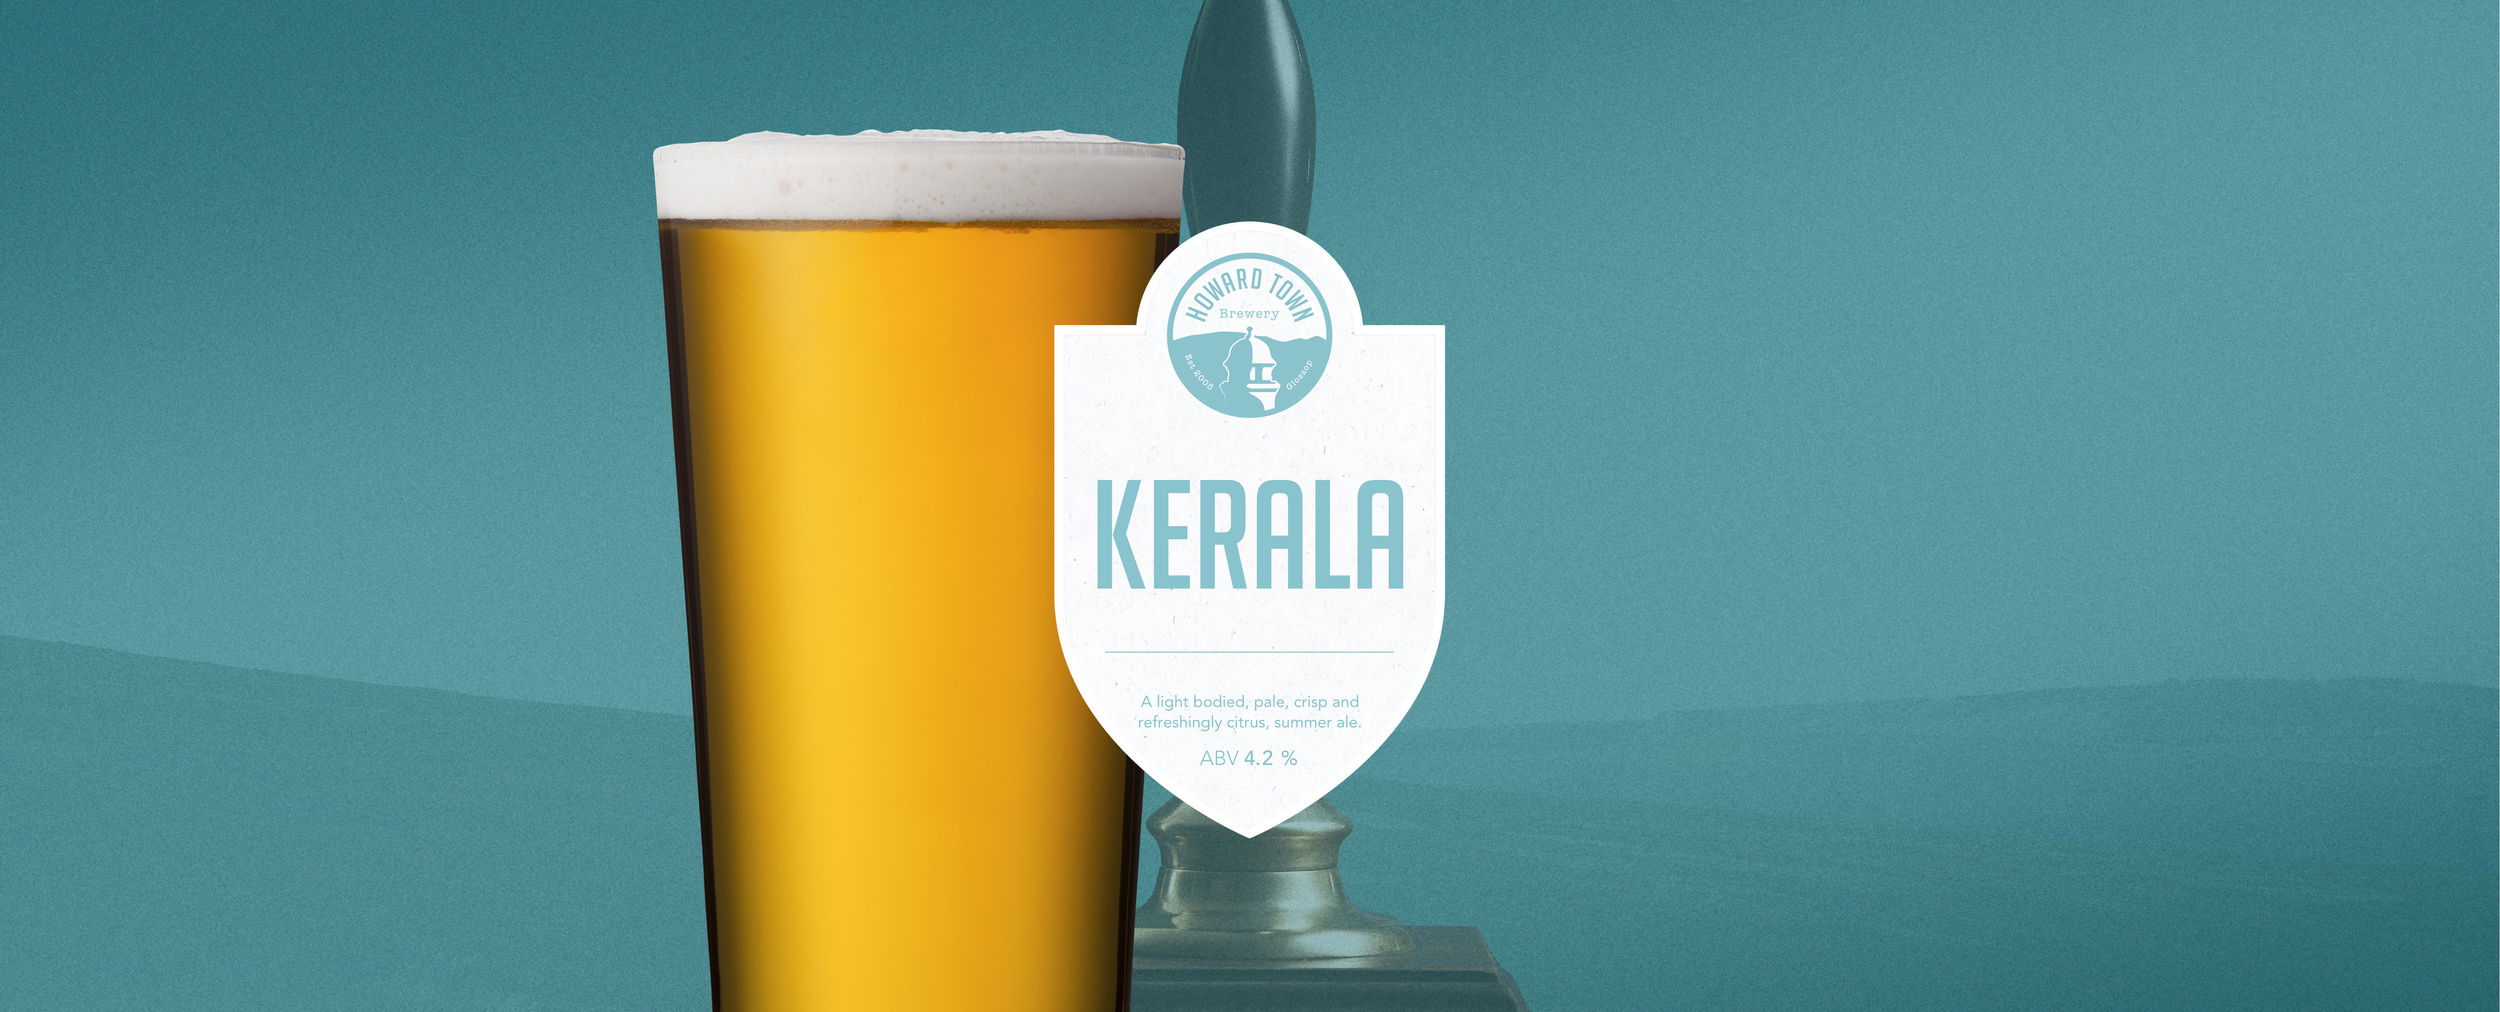 A light bodied pale crisp and refreshingly citrus summer ale. 4.2%ABV